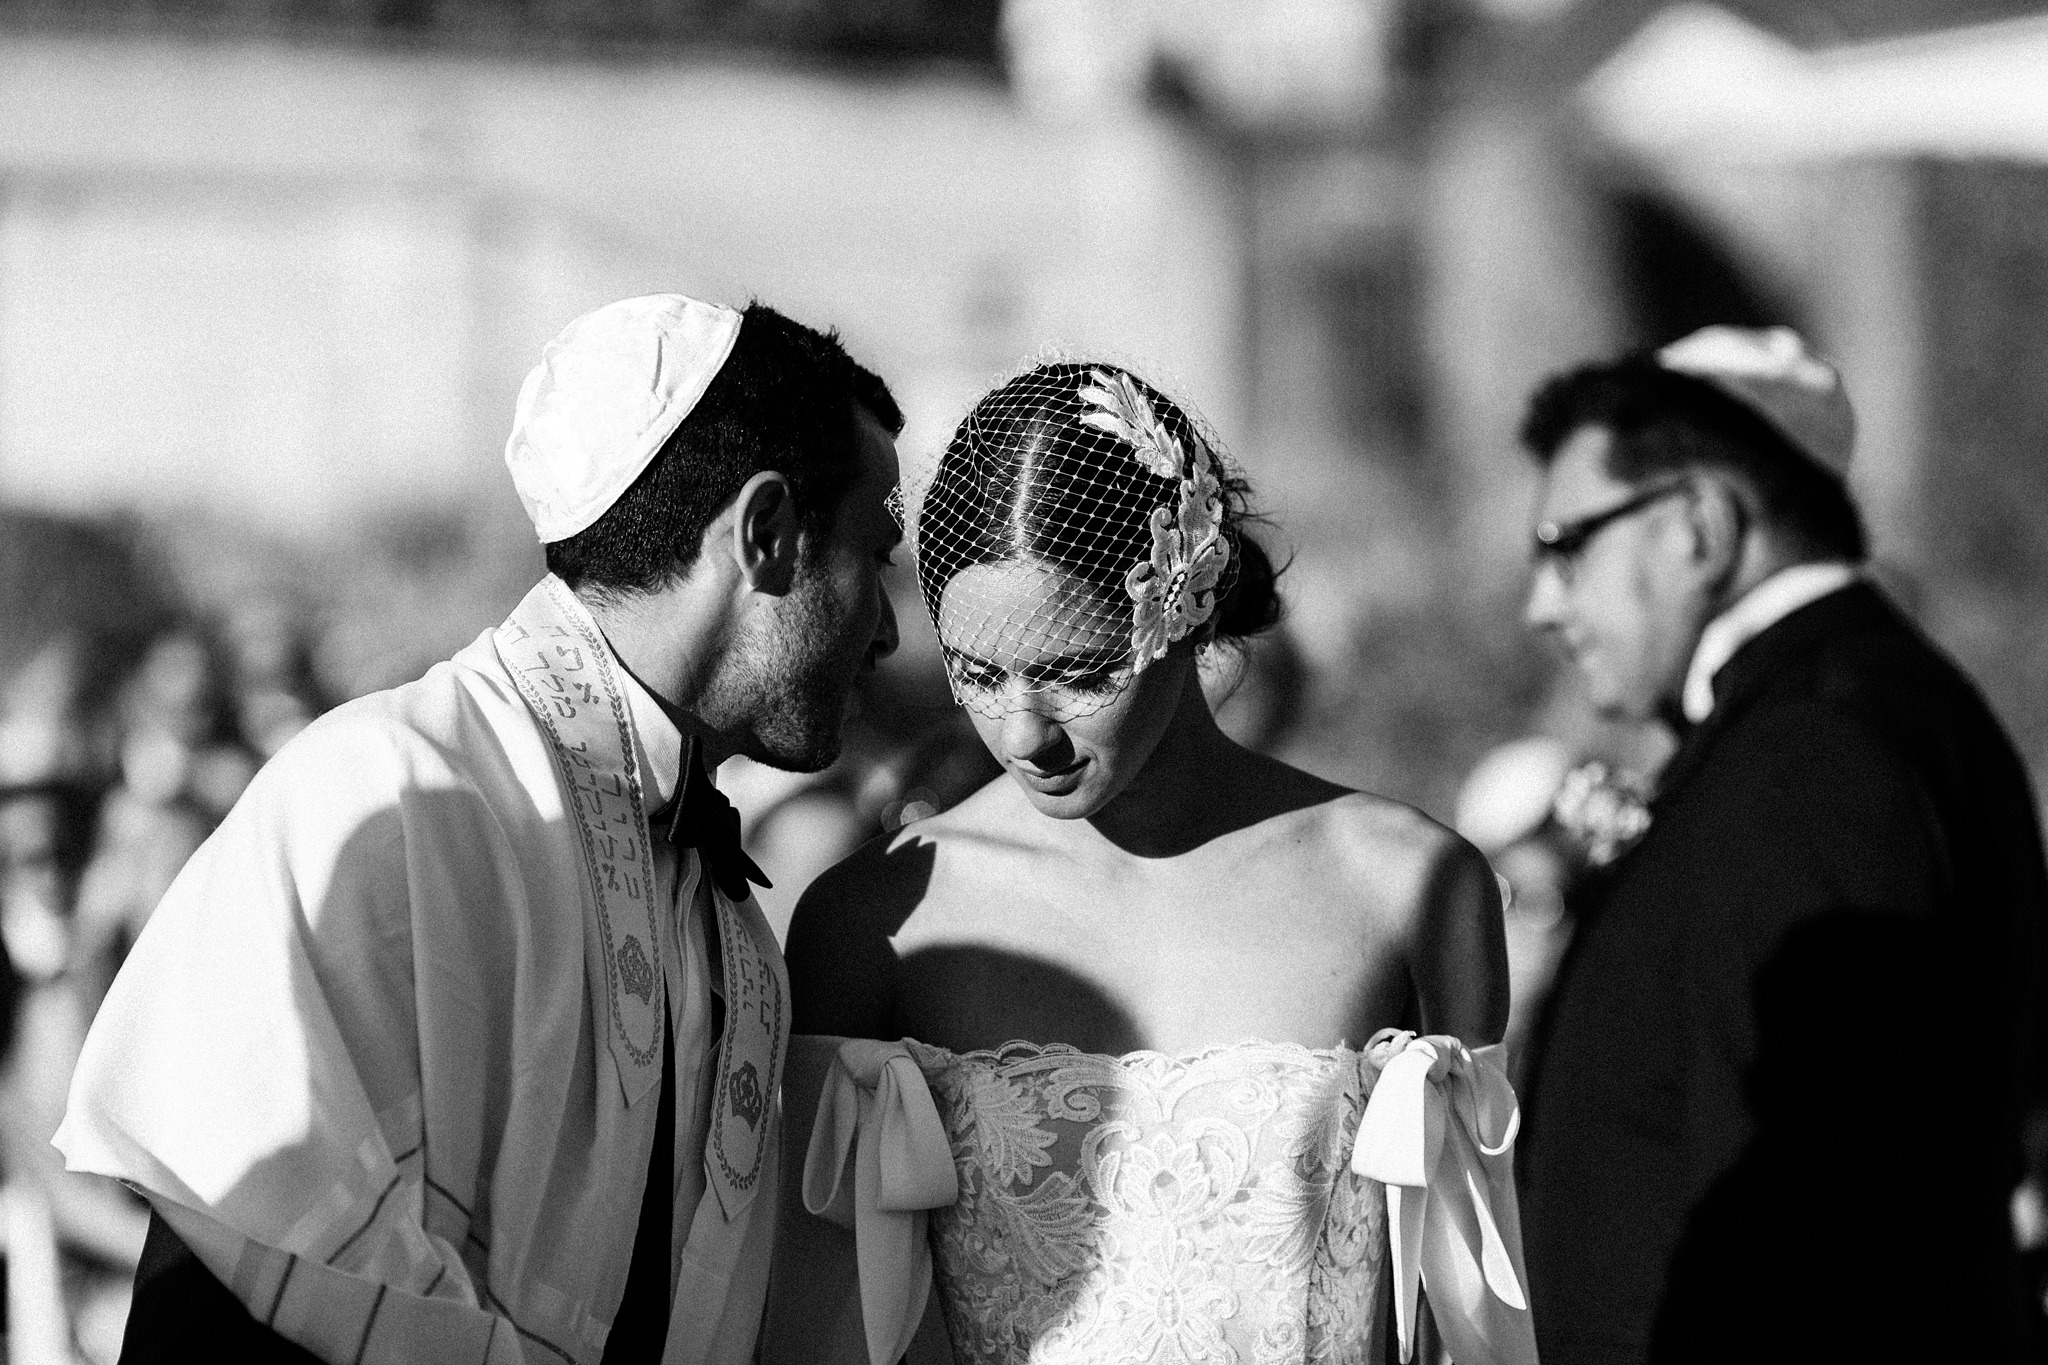 chateau-wedding-france-chanel-eric-as-seen-on-vogue-with-sarah-falugo-photographer_0107